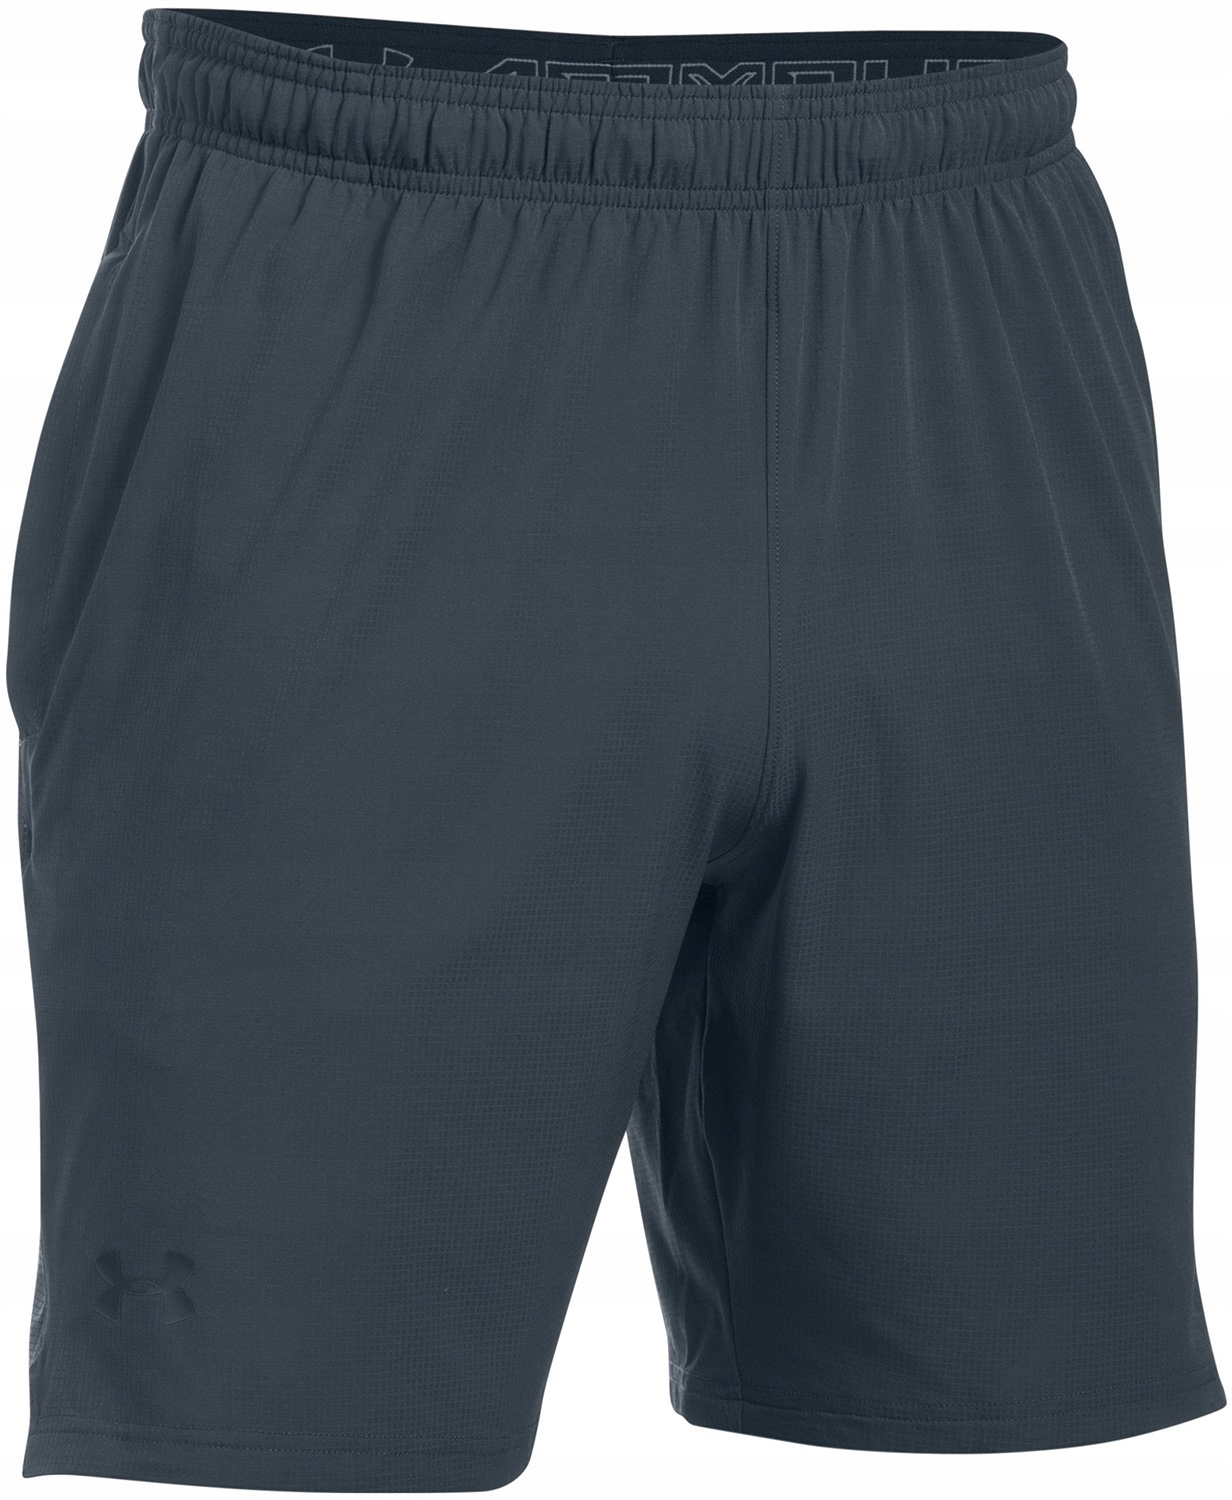 Under Armour UA Cage Short Grey # S (1304127-008)